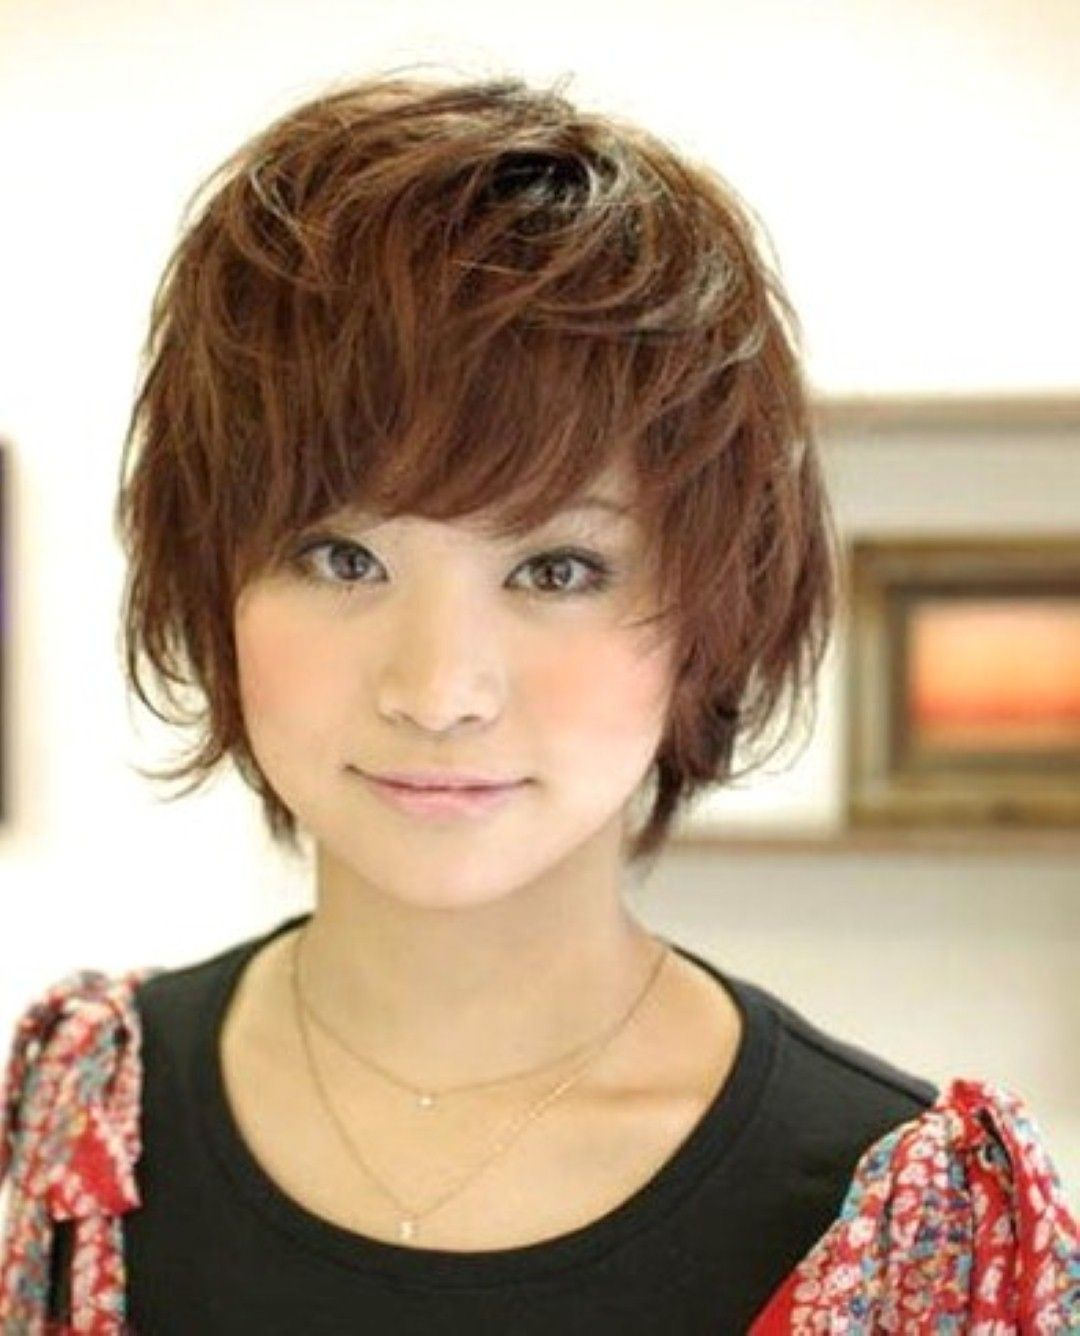 Kids hairstyles for short hair girls - Short Haircuts For Little Girls Photo